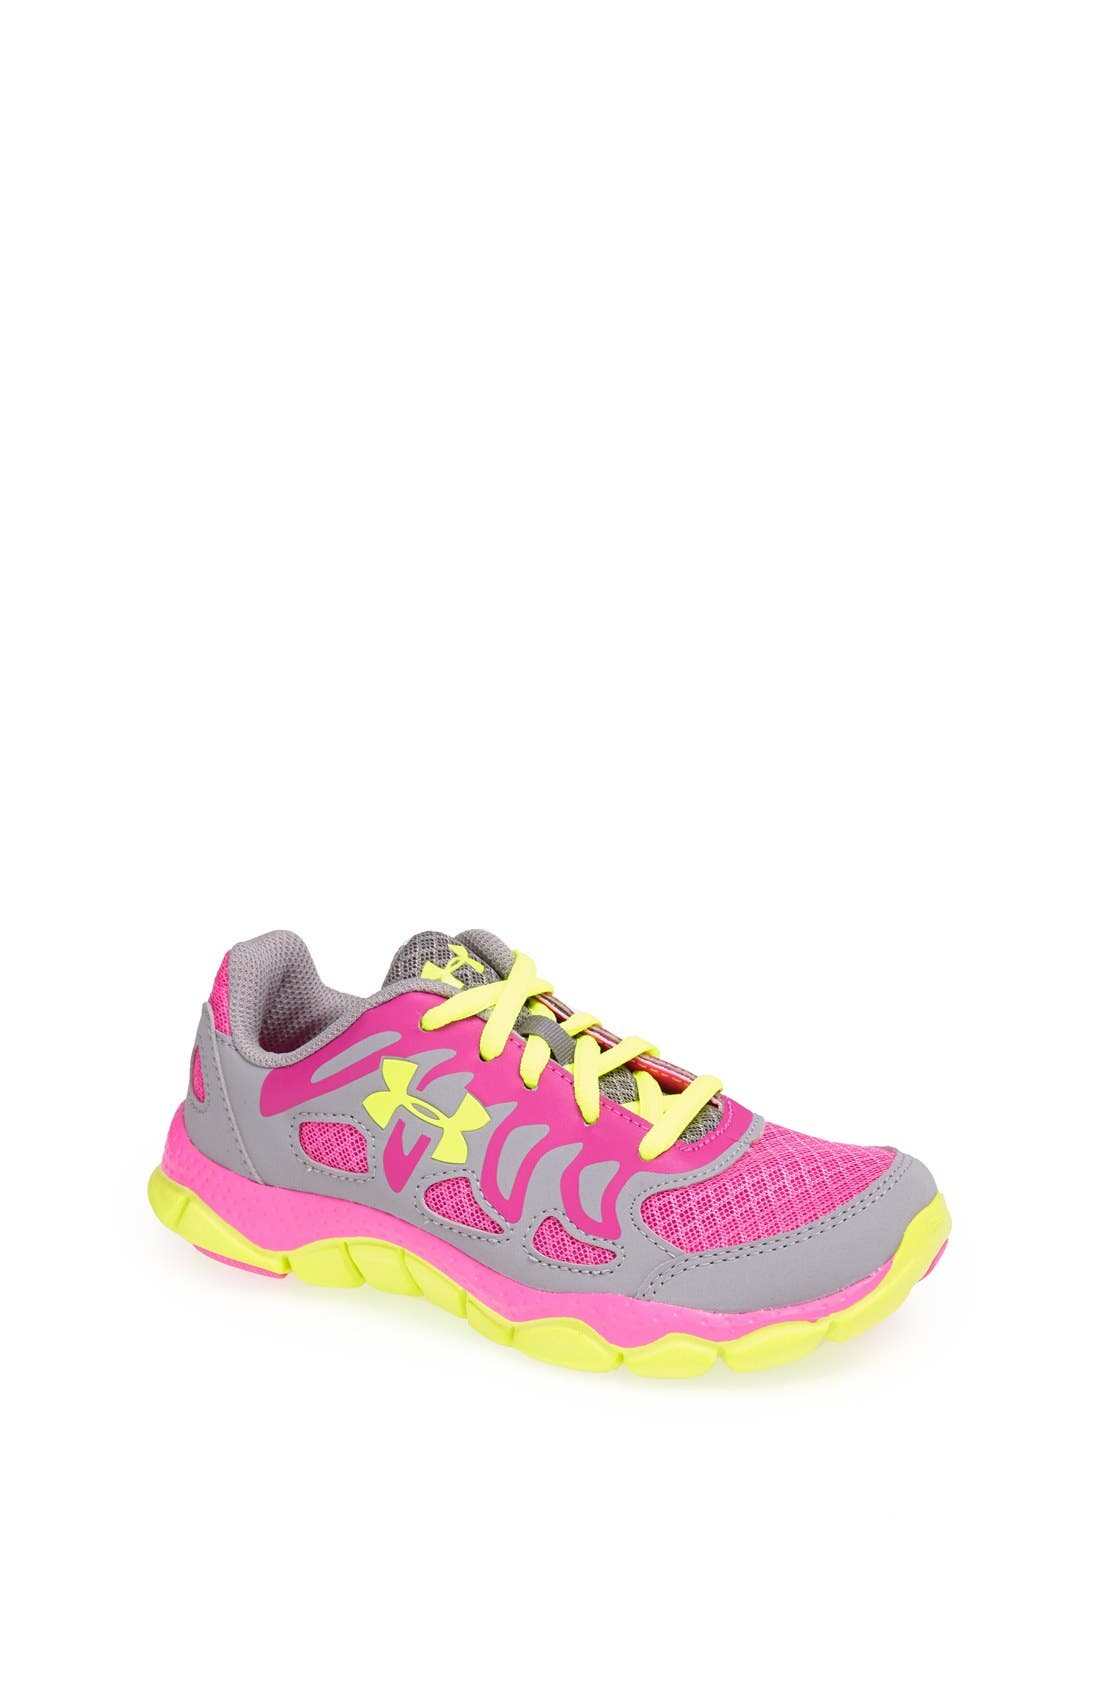 Alternate Image 1 Selected - Under Armour 'Engage' Running Shoe (Toddler & Little Kid)